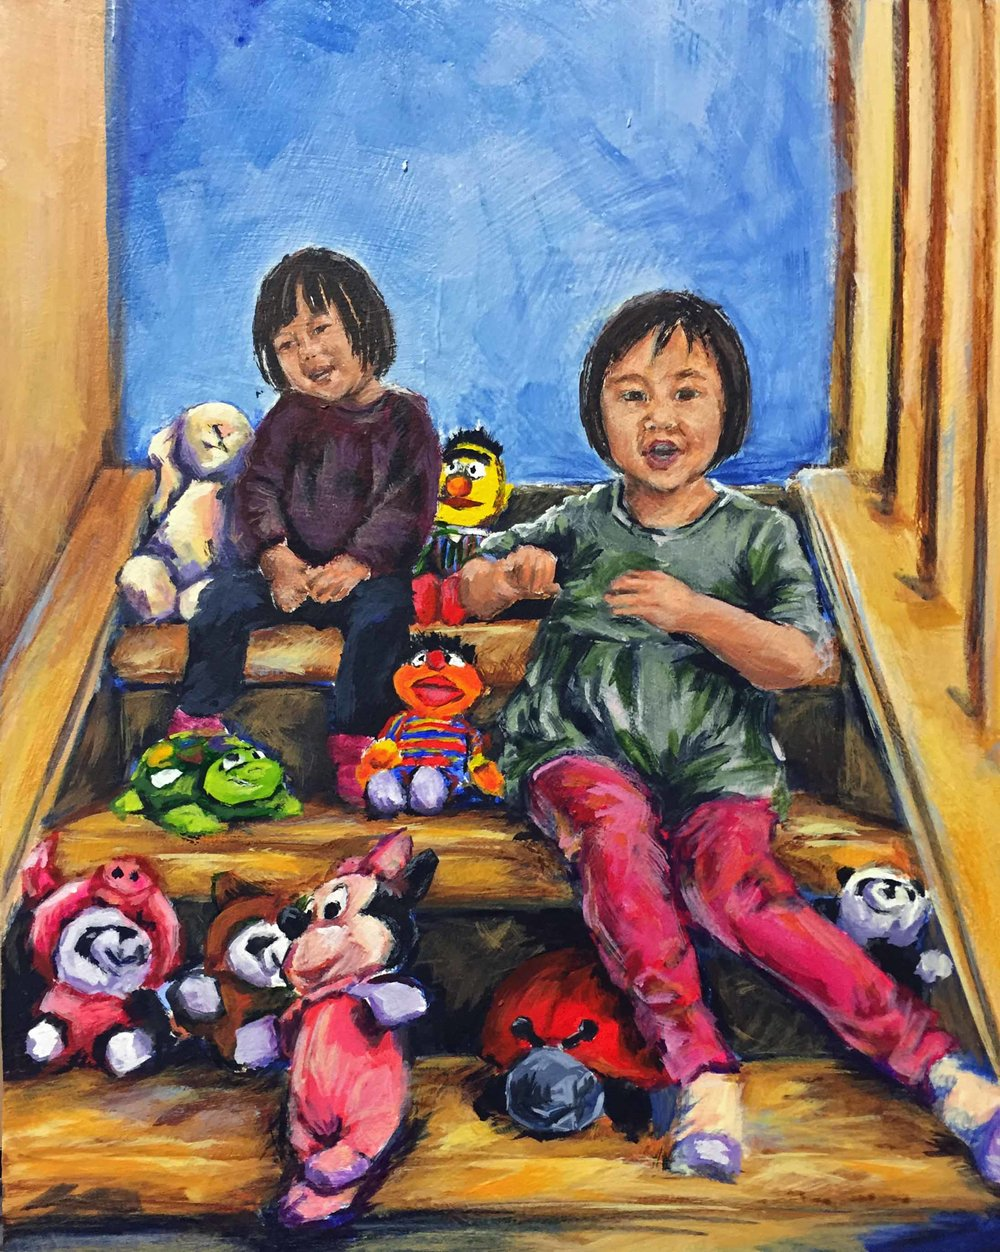 """Party"", Acrylic Painting of Two children sitting on stairs with stuffed animals, by Ashley Oshiro, Calgary, Alberta, Local Fine Artist, Original Art"